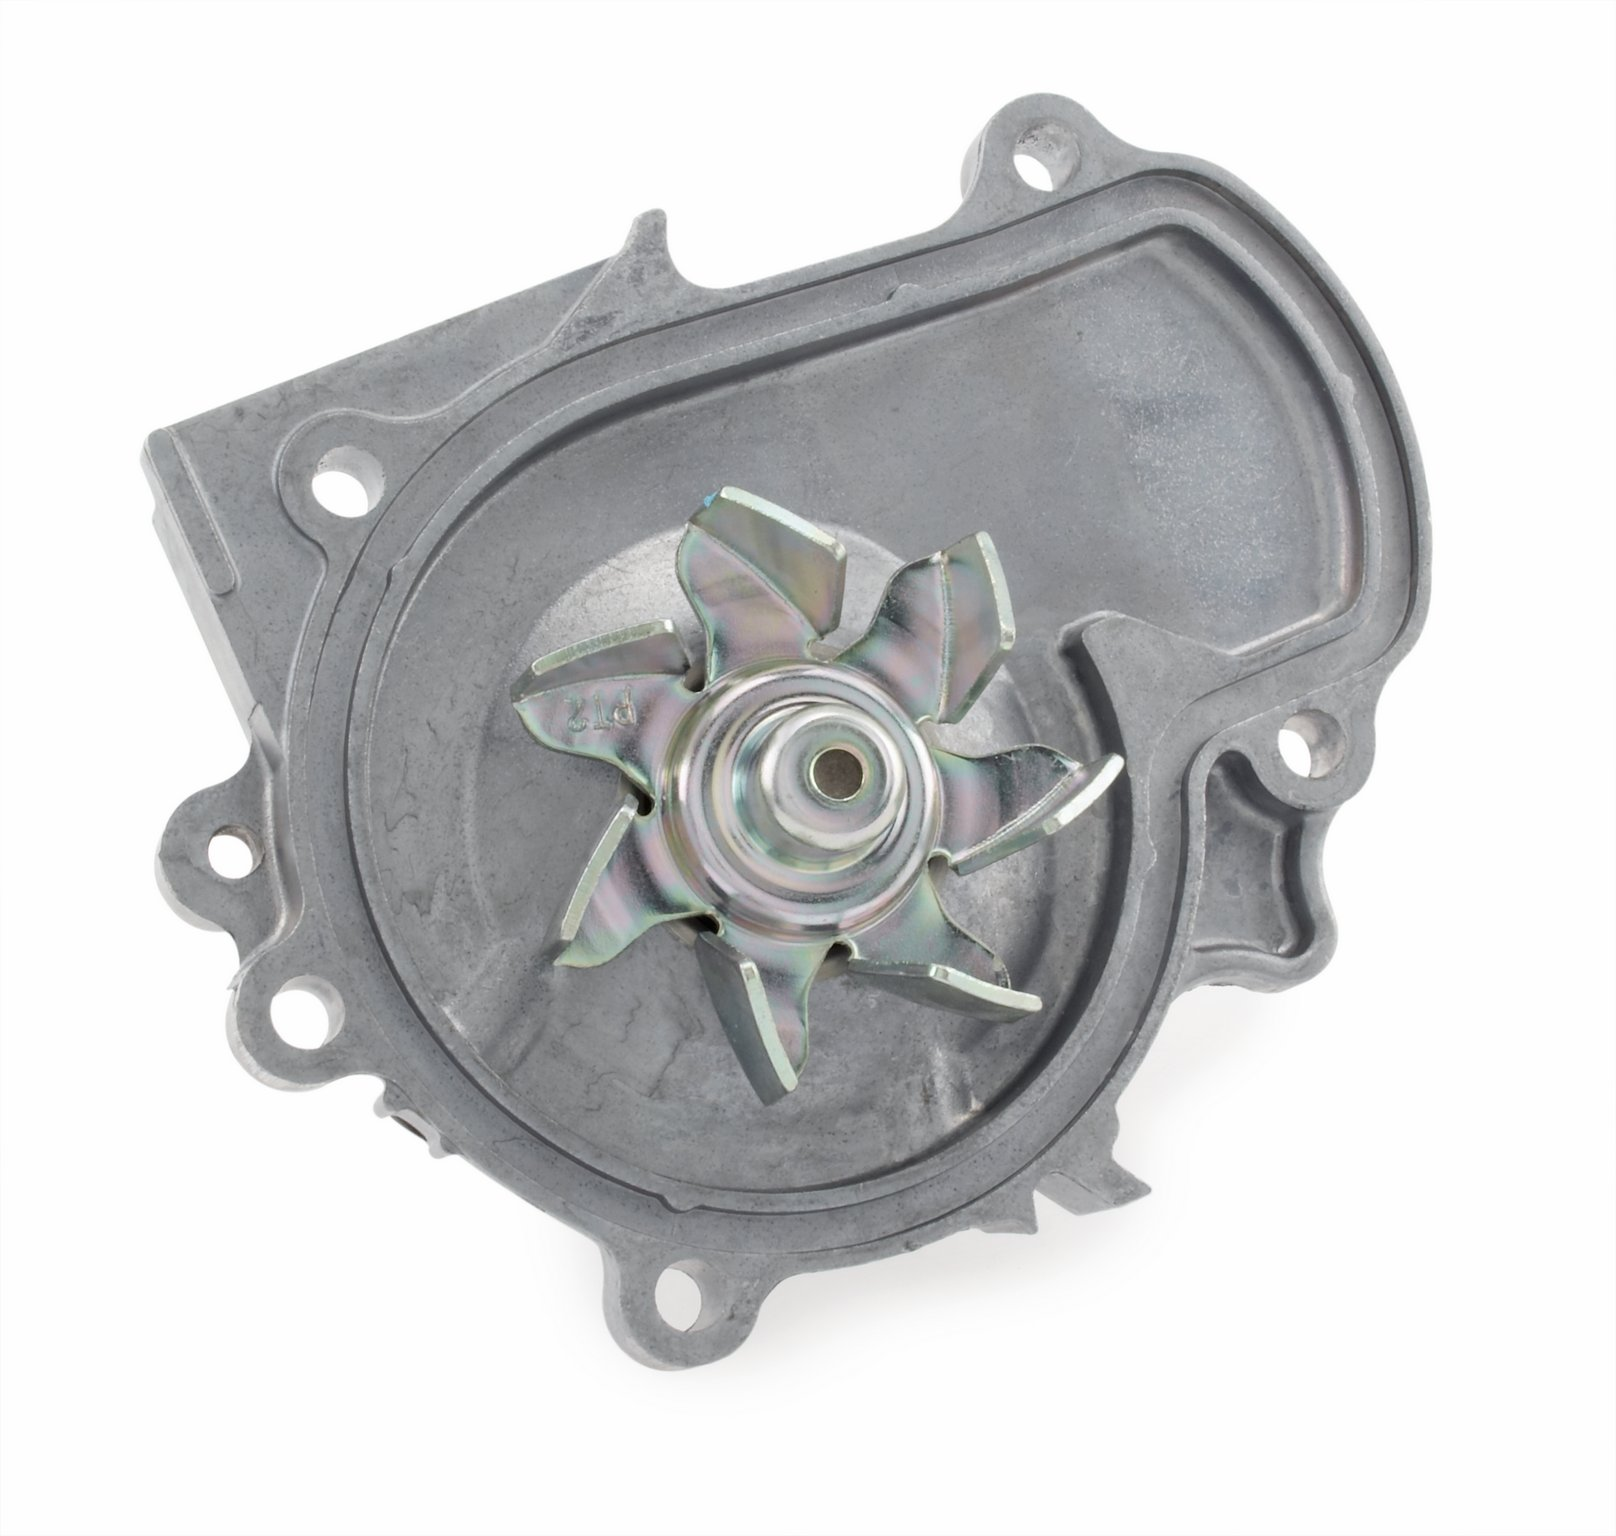 1998 Acura TL Engine Water Pump A8 WPH-004 ...